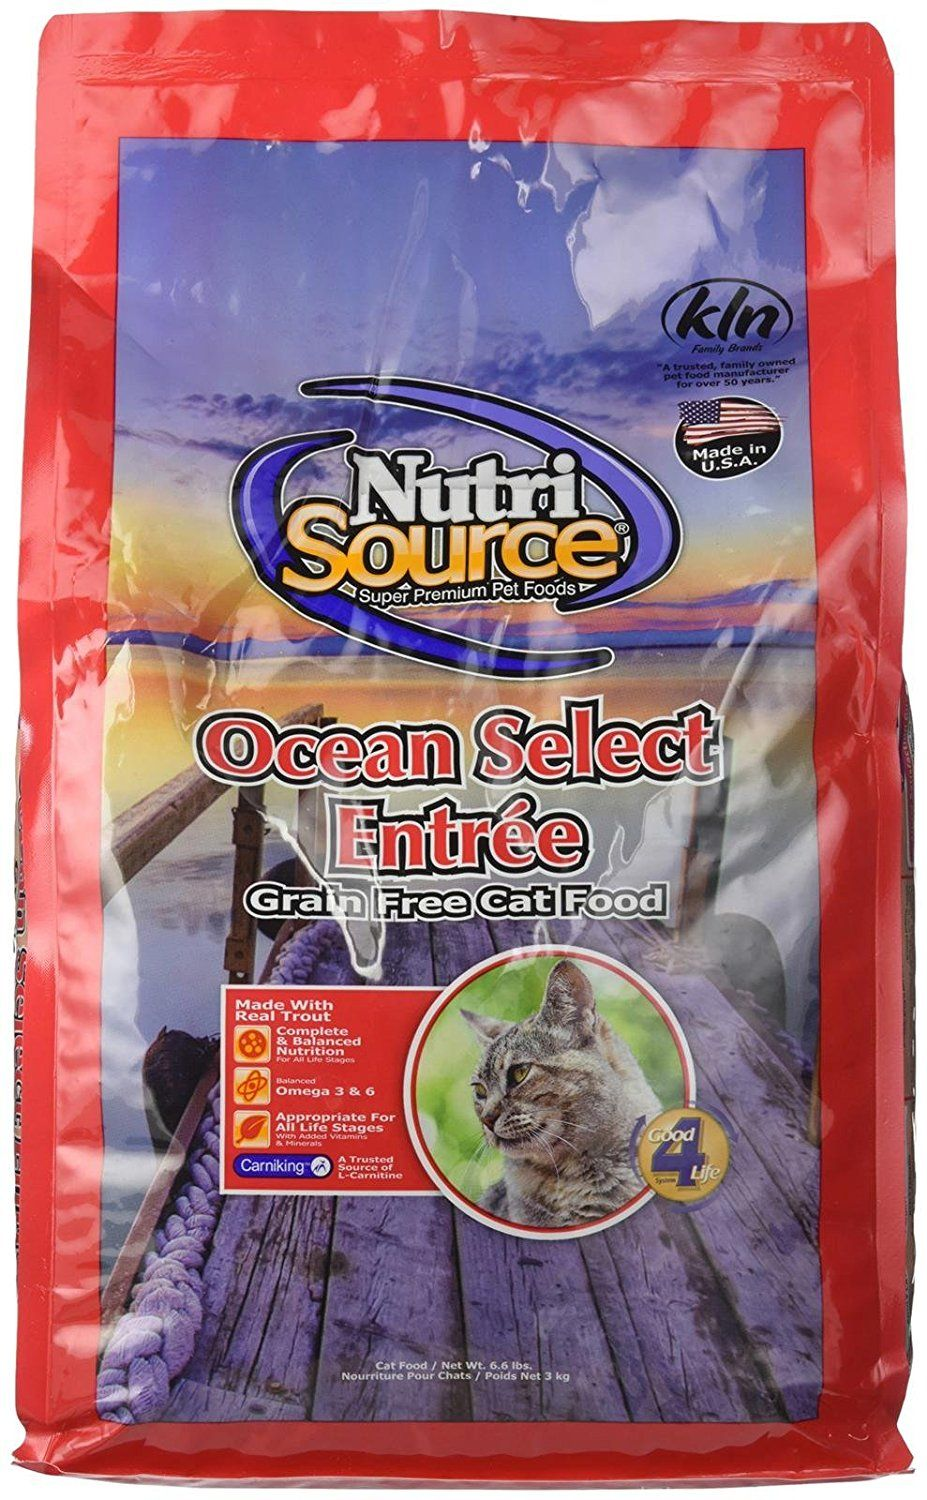 Nutrisource GrainFree Ocean Select Cat Food 6.6LB